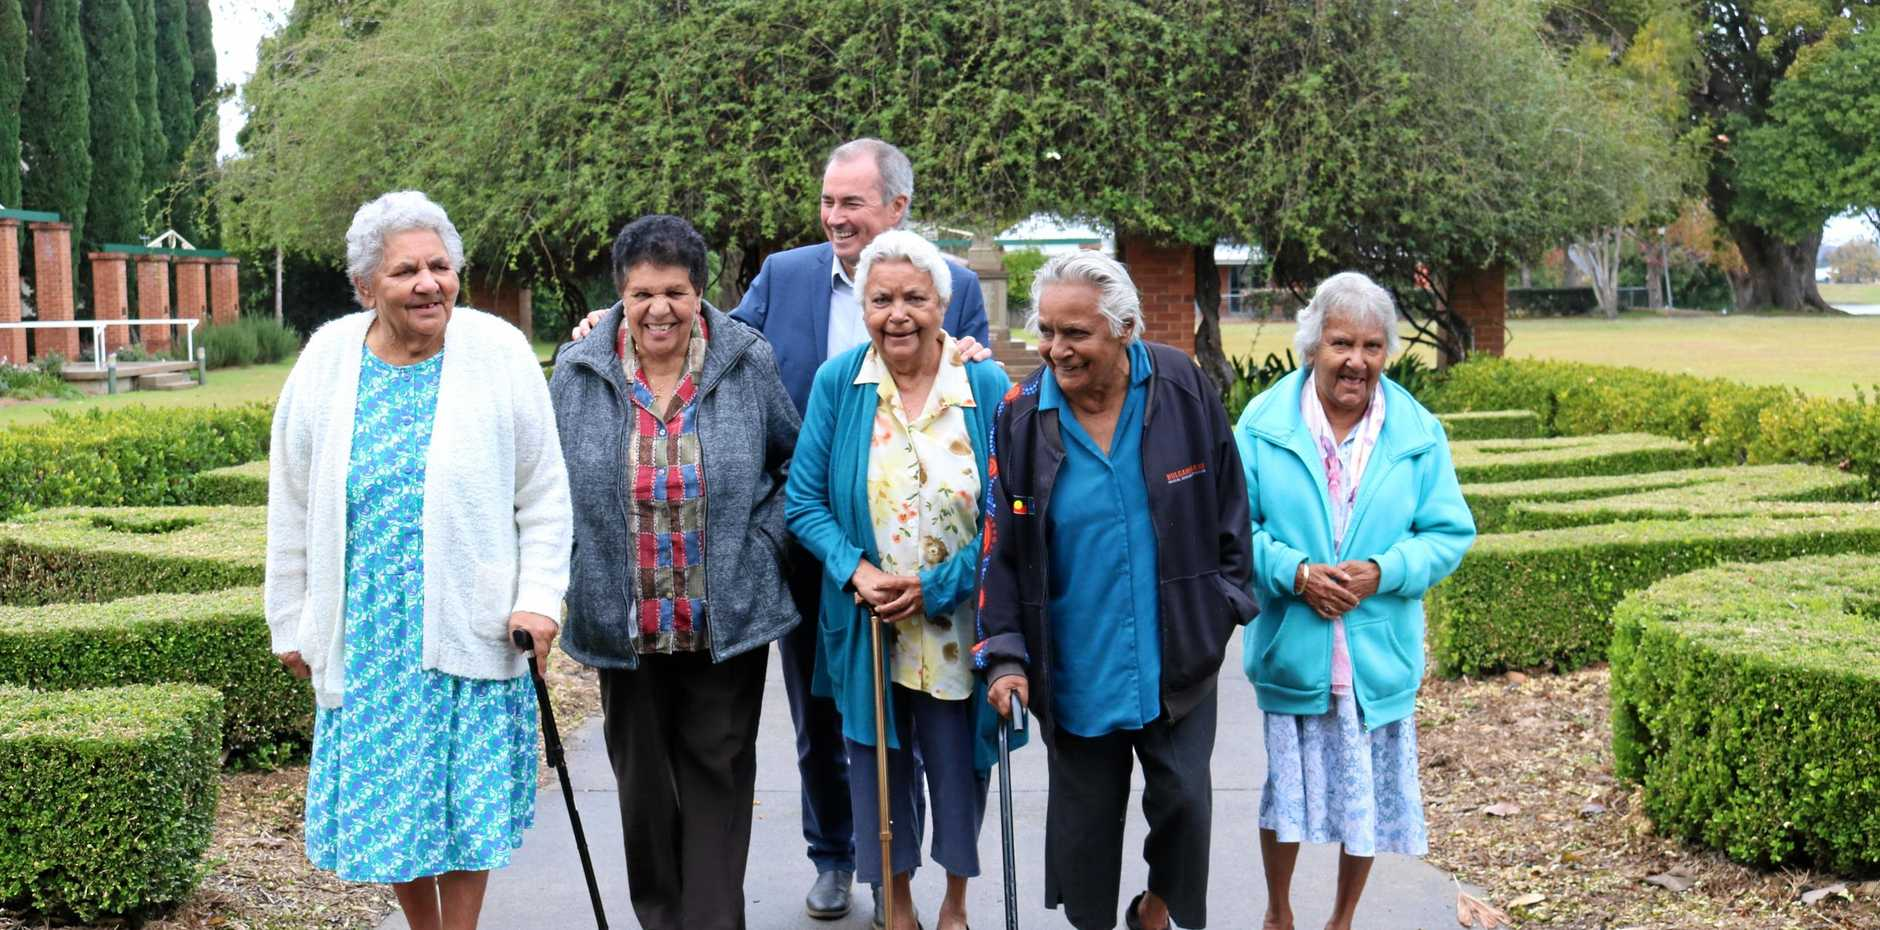 SITE IS SAFE: Aboriginal elders from Baryulgil L-R: Linda Walker, Lana Mundine, Pauline Donnelly, Dorothy Daley & Heather Monaghan are all smiles with Clarence MP, Chris Gulaptis